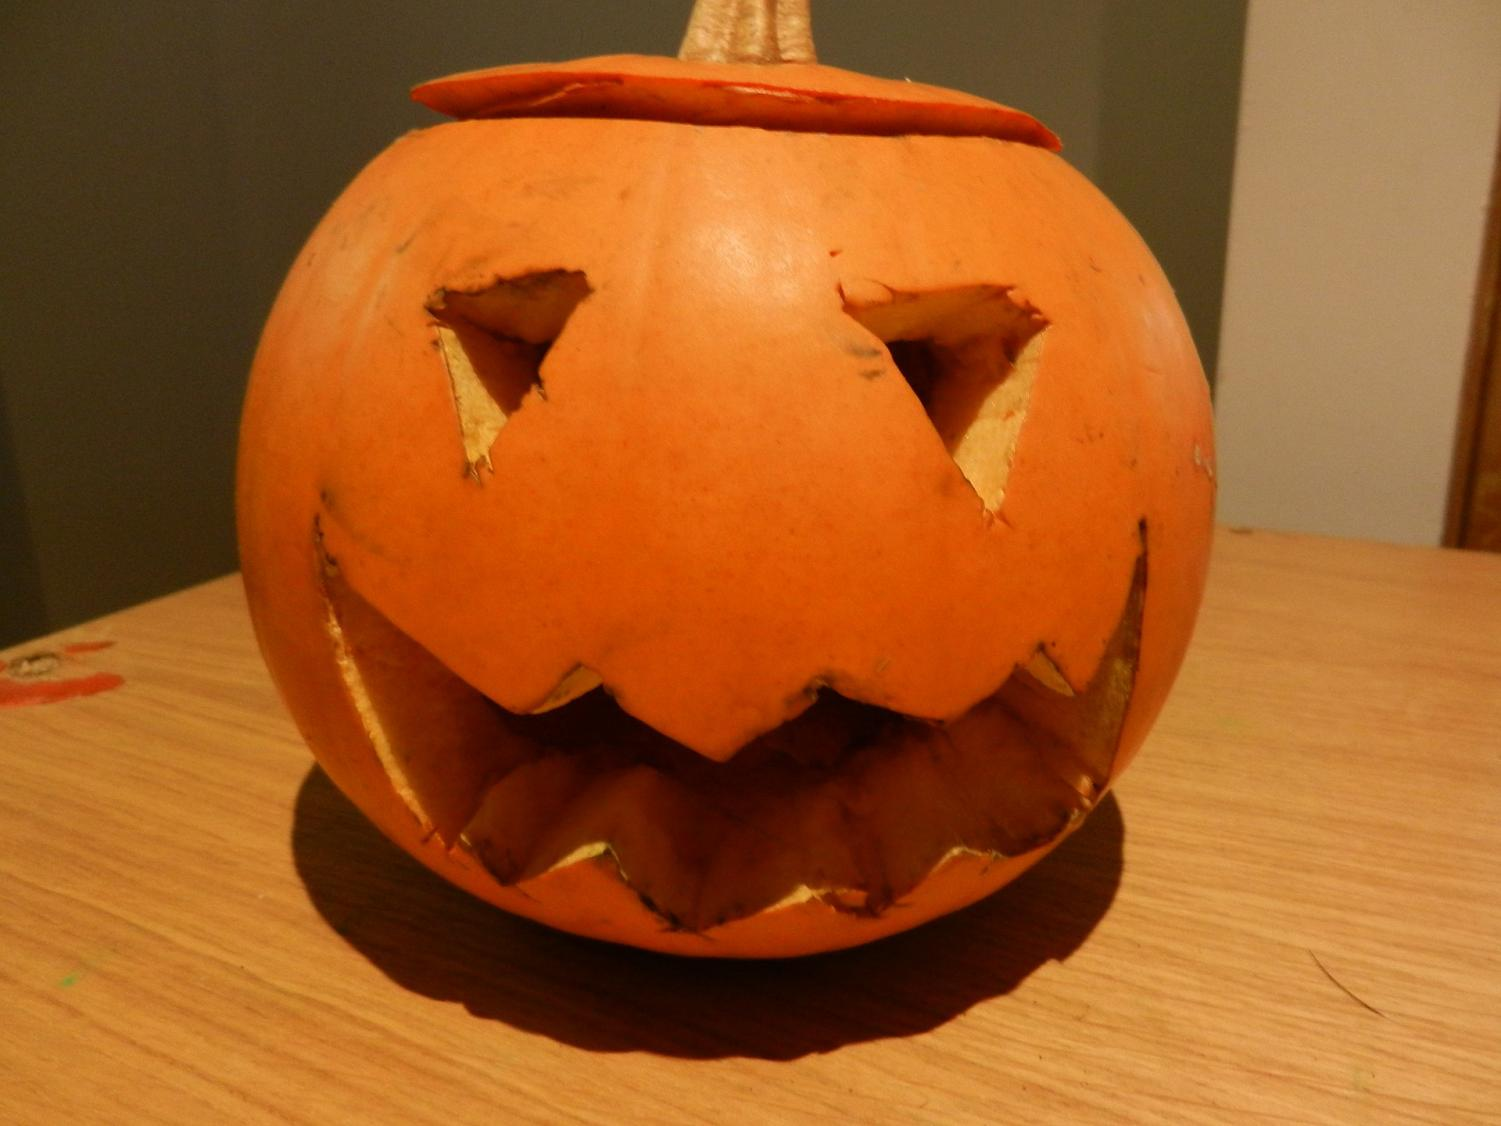 This jack-o-lantern was carved in honor of Samhain.